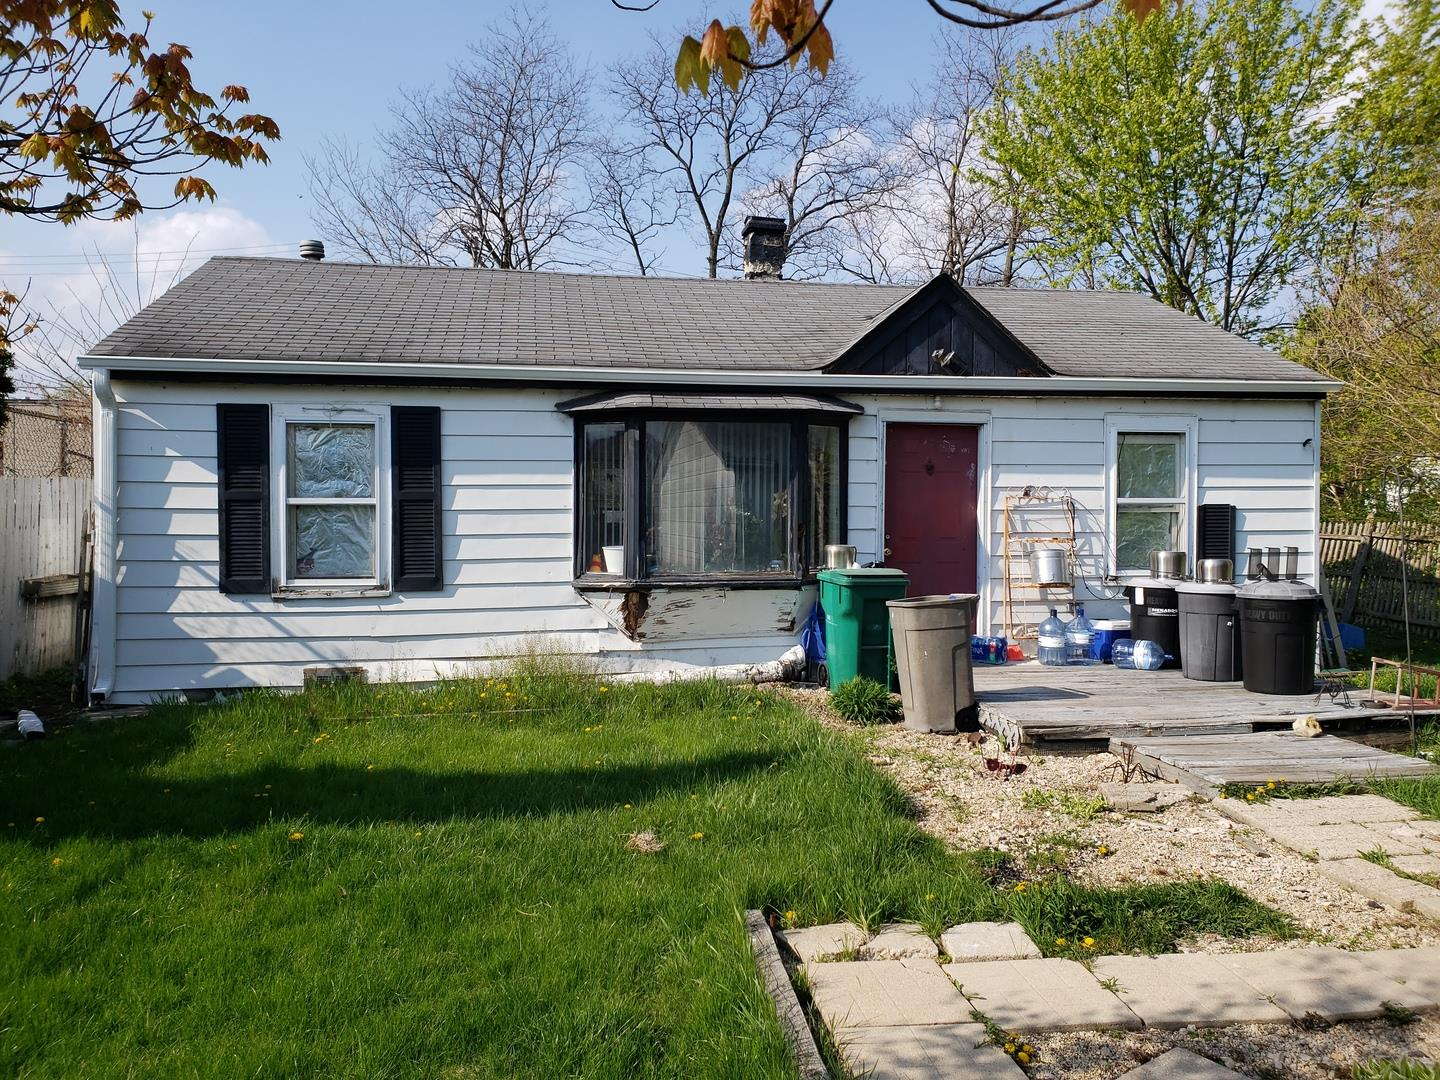 17W558 Manor Lane, Villa Park, IL 60181 - #: 11082531